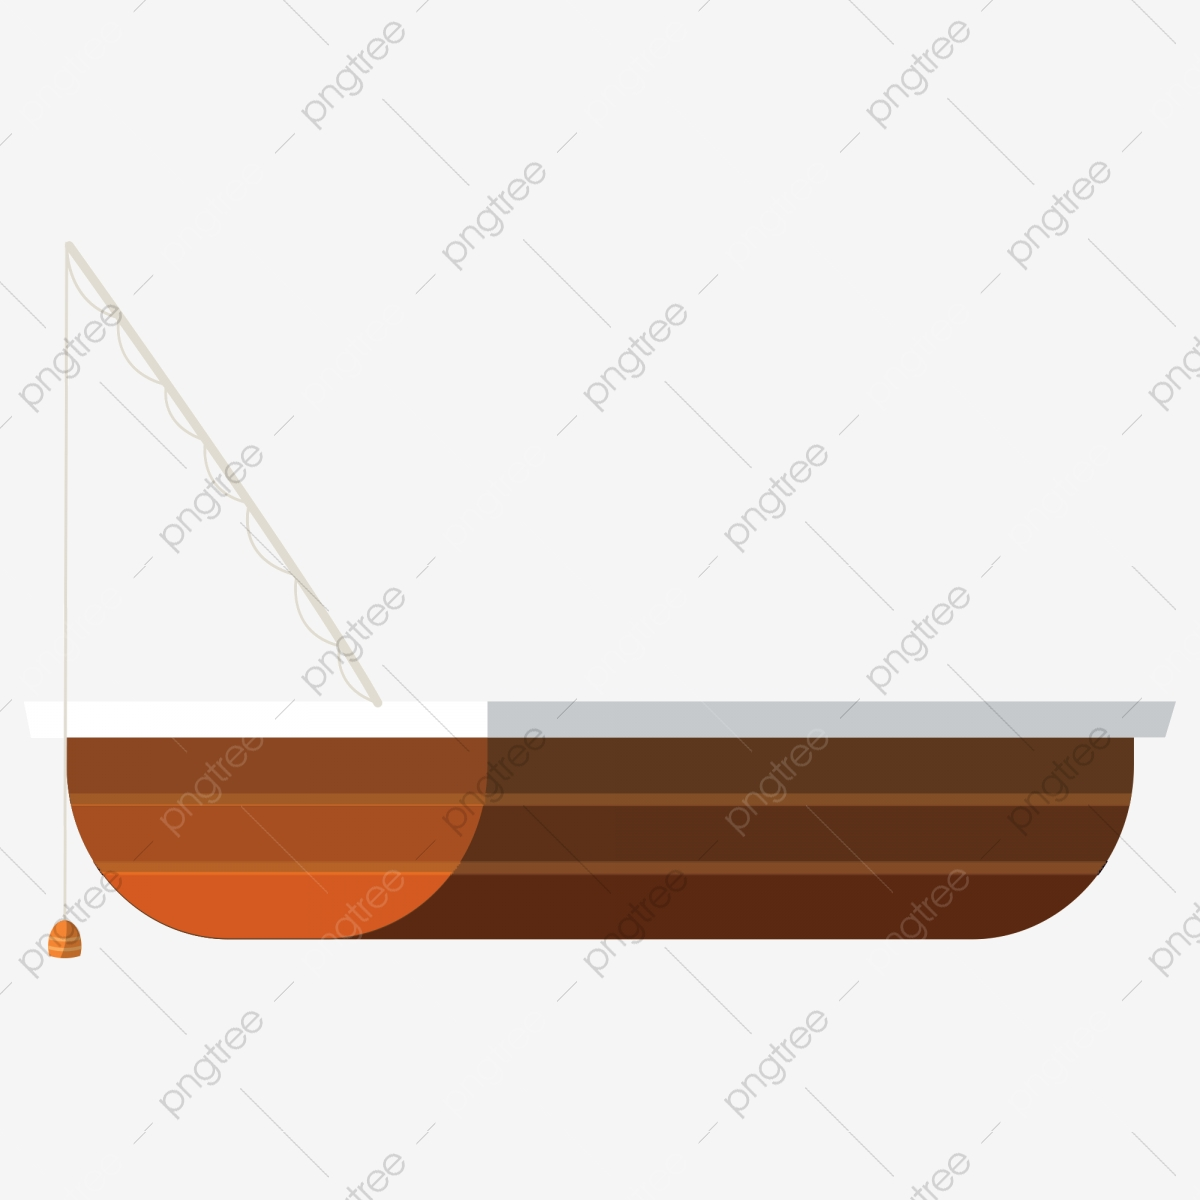 Fishing Boat Png Images Vector And Psd Files Free Download On Pngtree